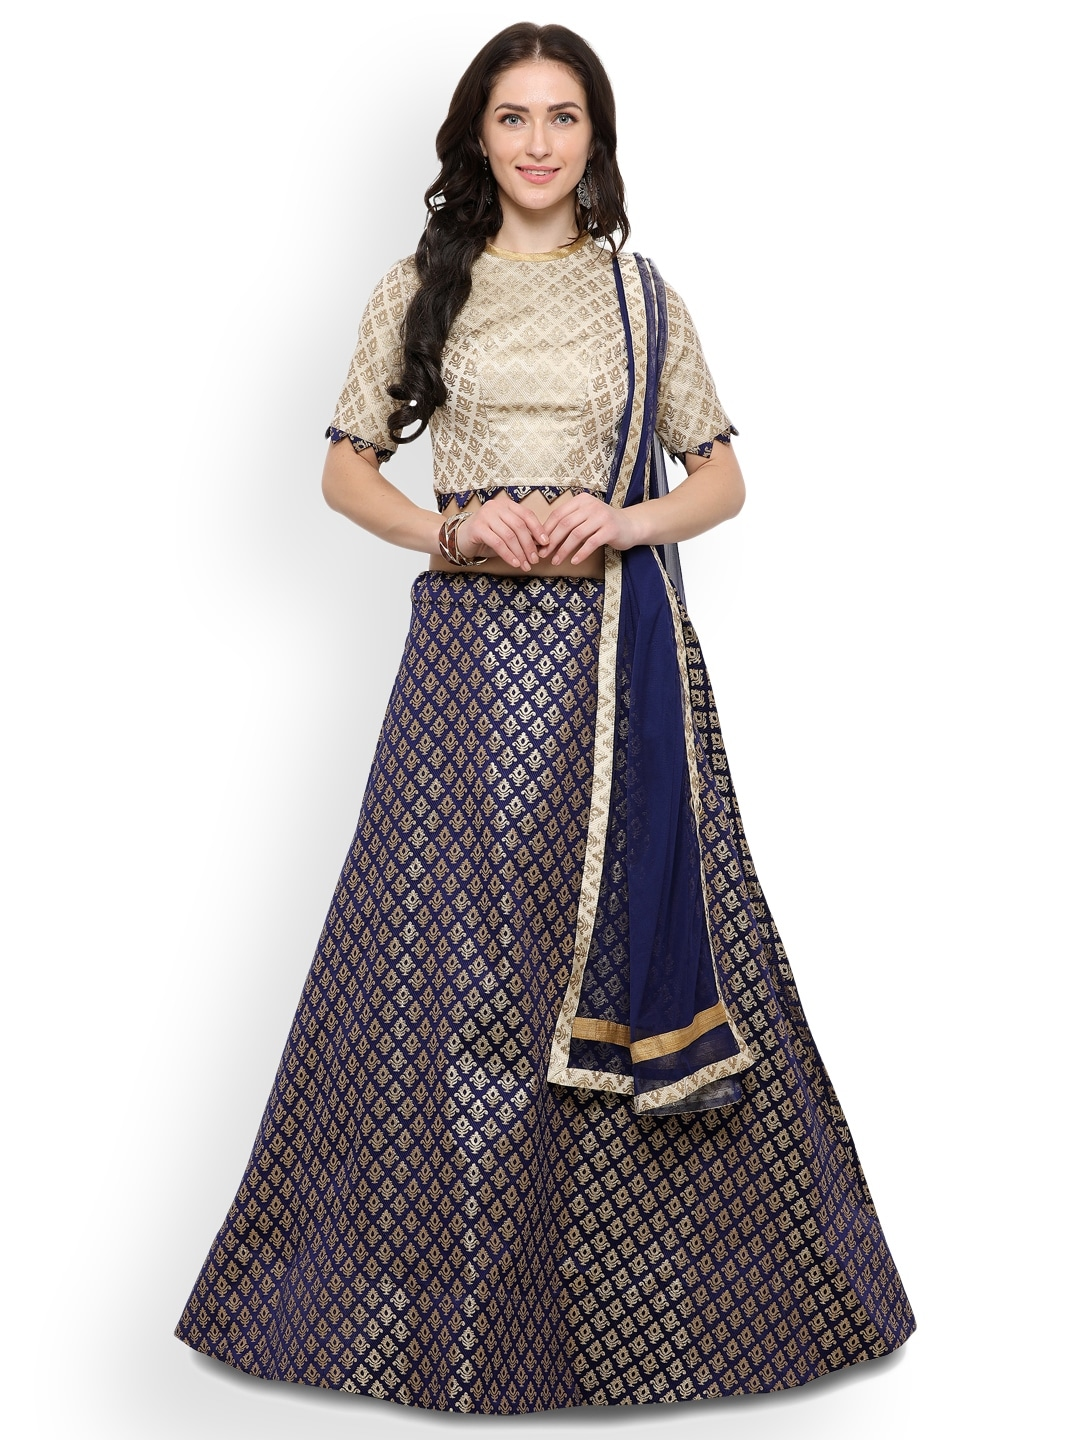 Inddus Blue & Gold-Tone Semi-Stitched Lehenga & Unstitched Blouse With Dupatta image